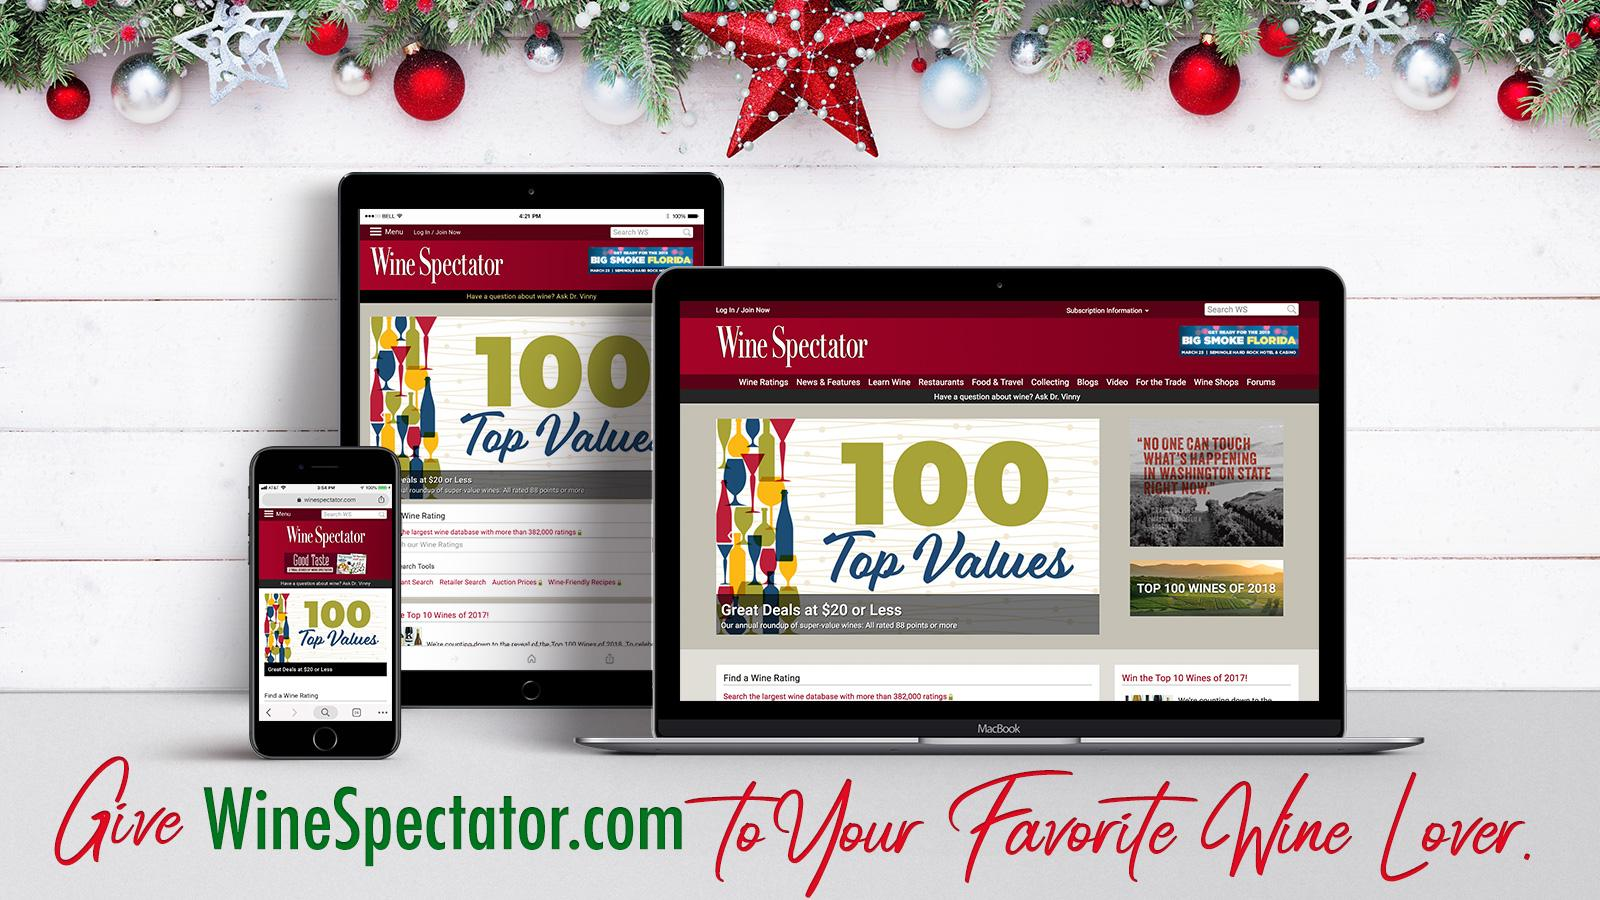 Give the Gift of WineSpectator.com